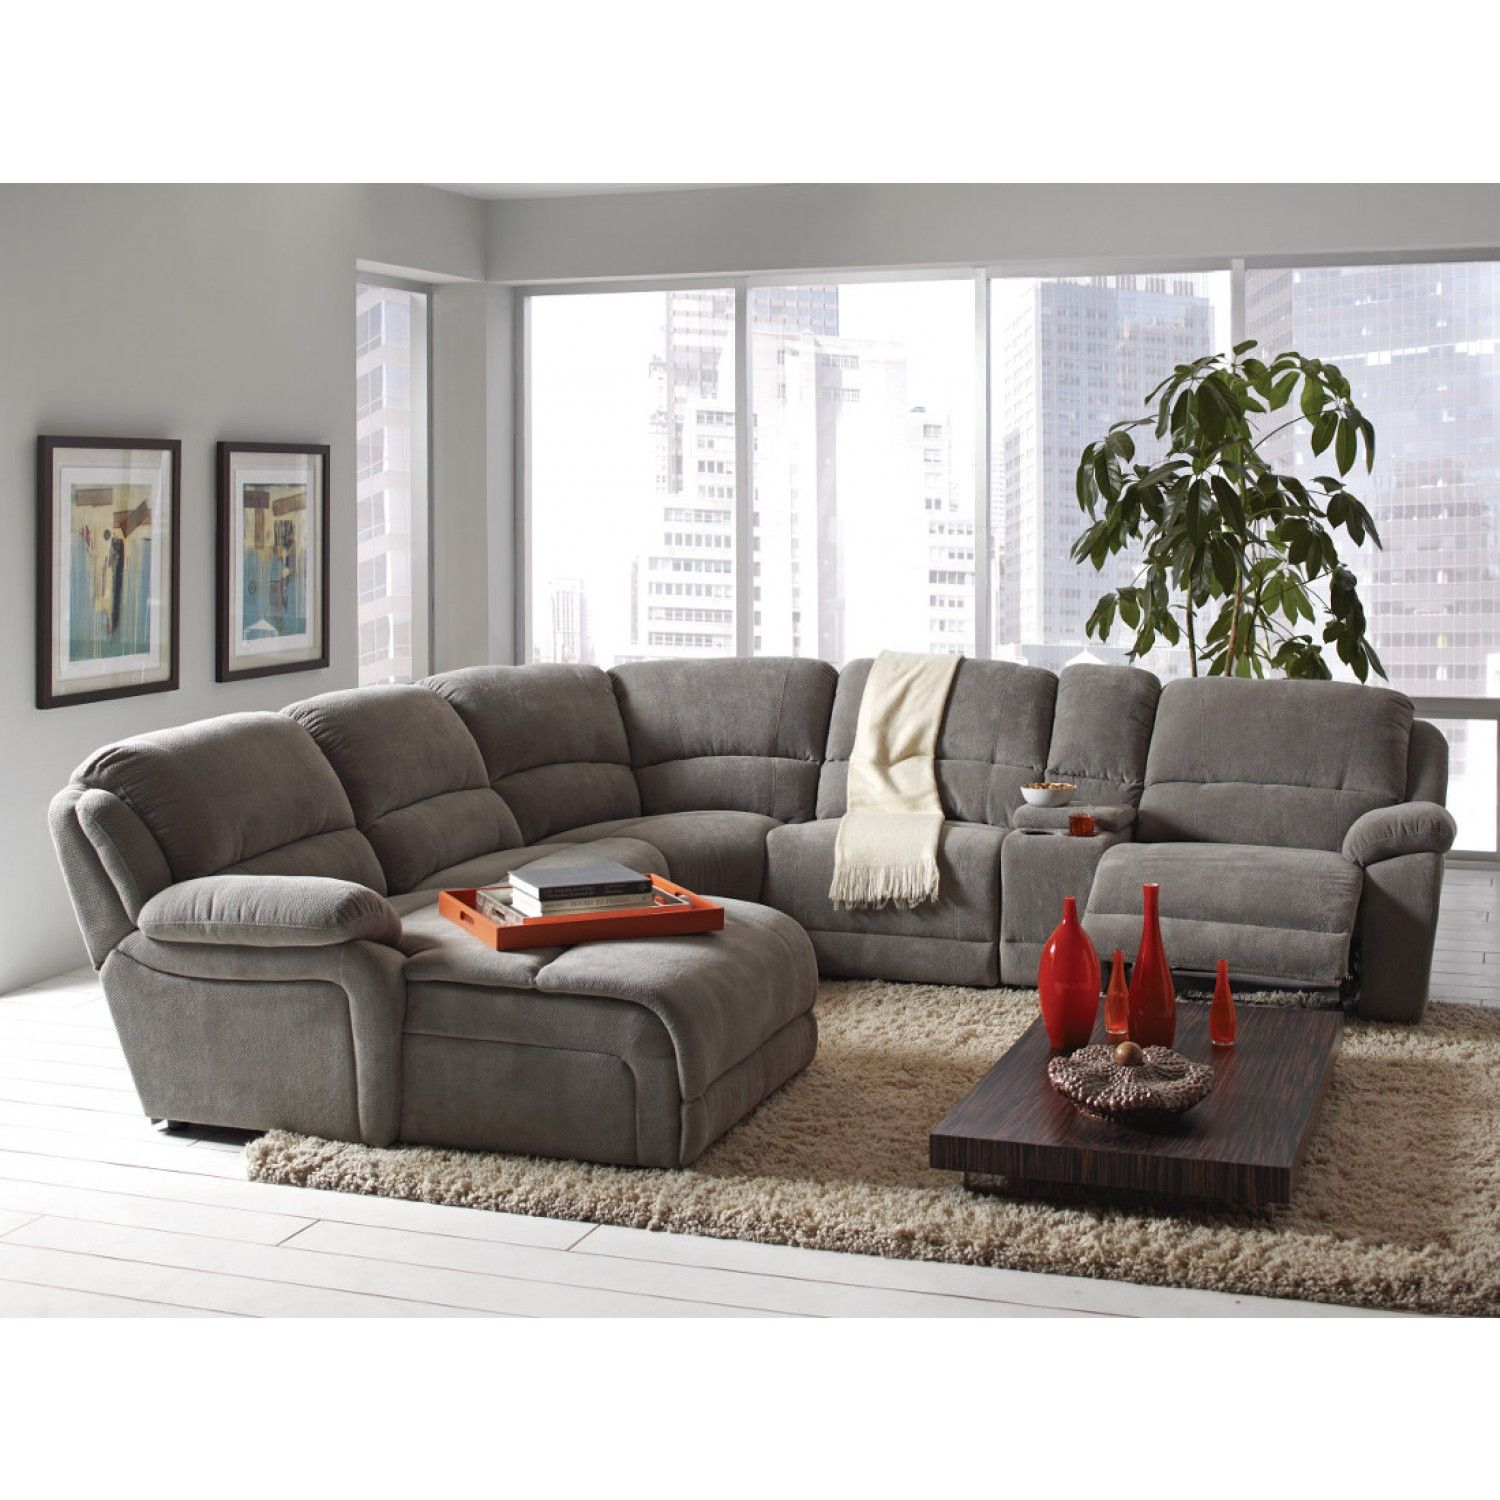 Coaster Mackenzie Silver 6Piece Reclining Sectional Sofa